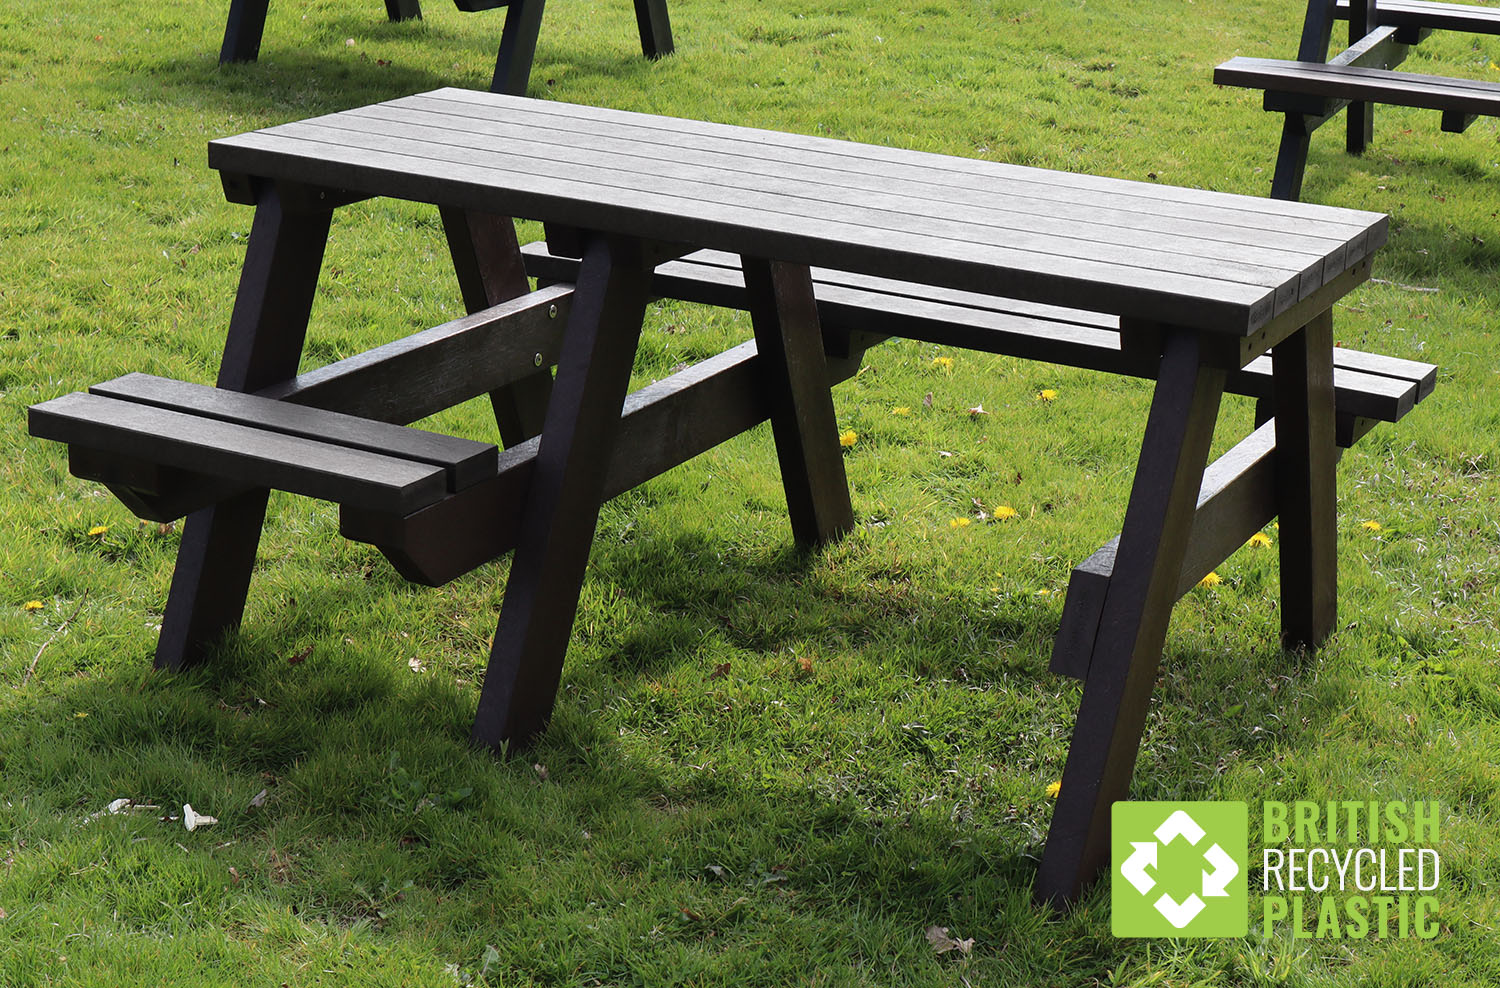 Recycled Plastic Picnic Tables with Wheelchair Access